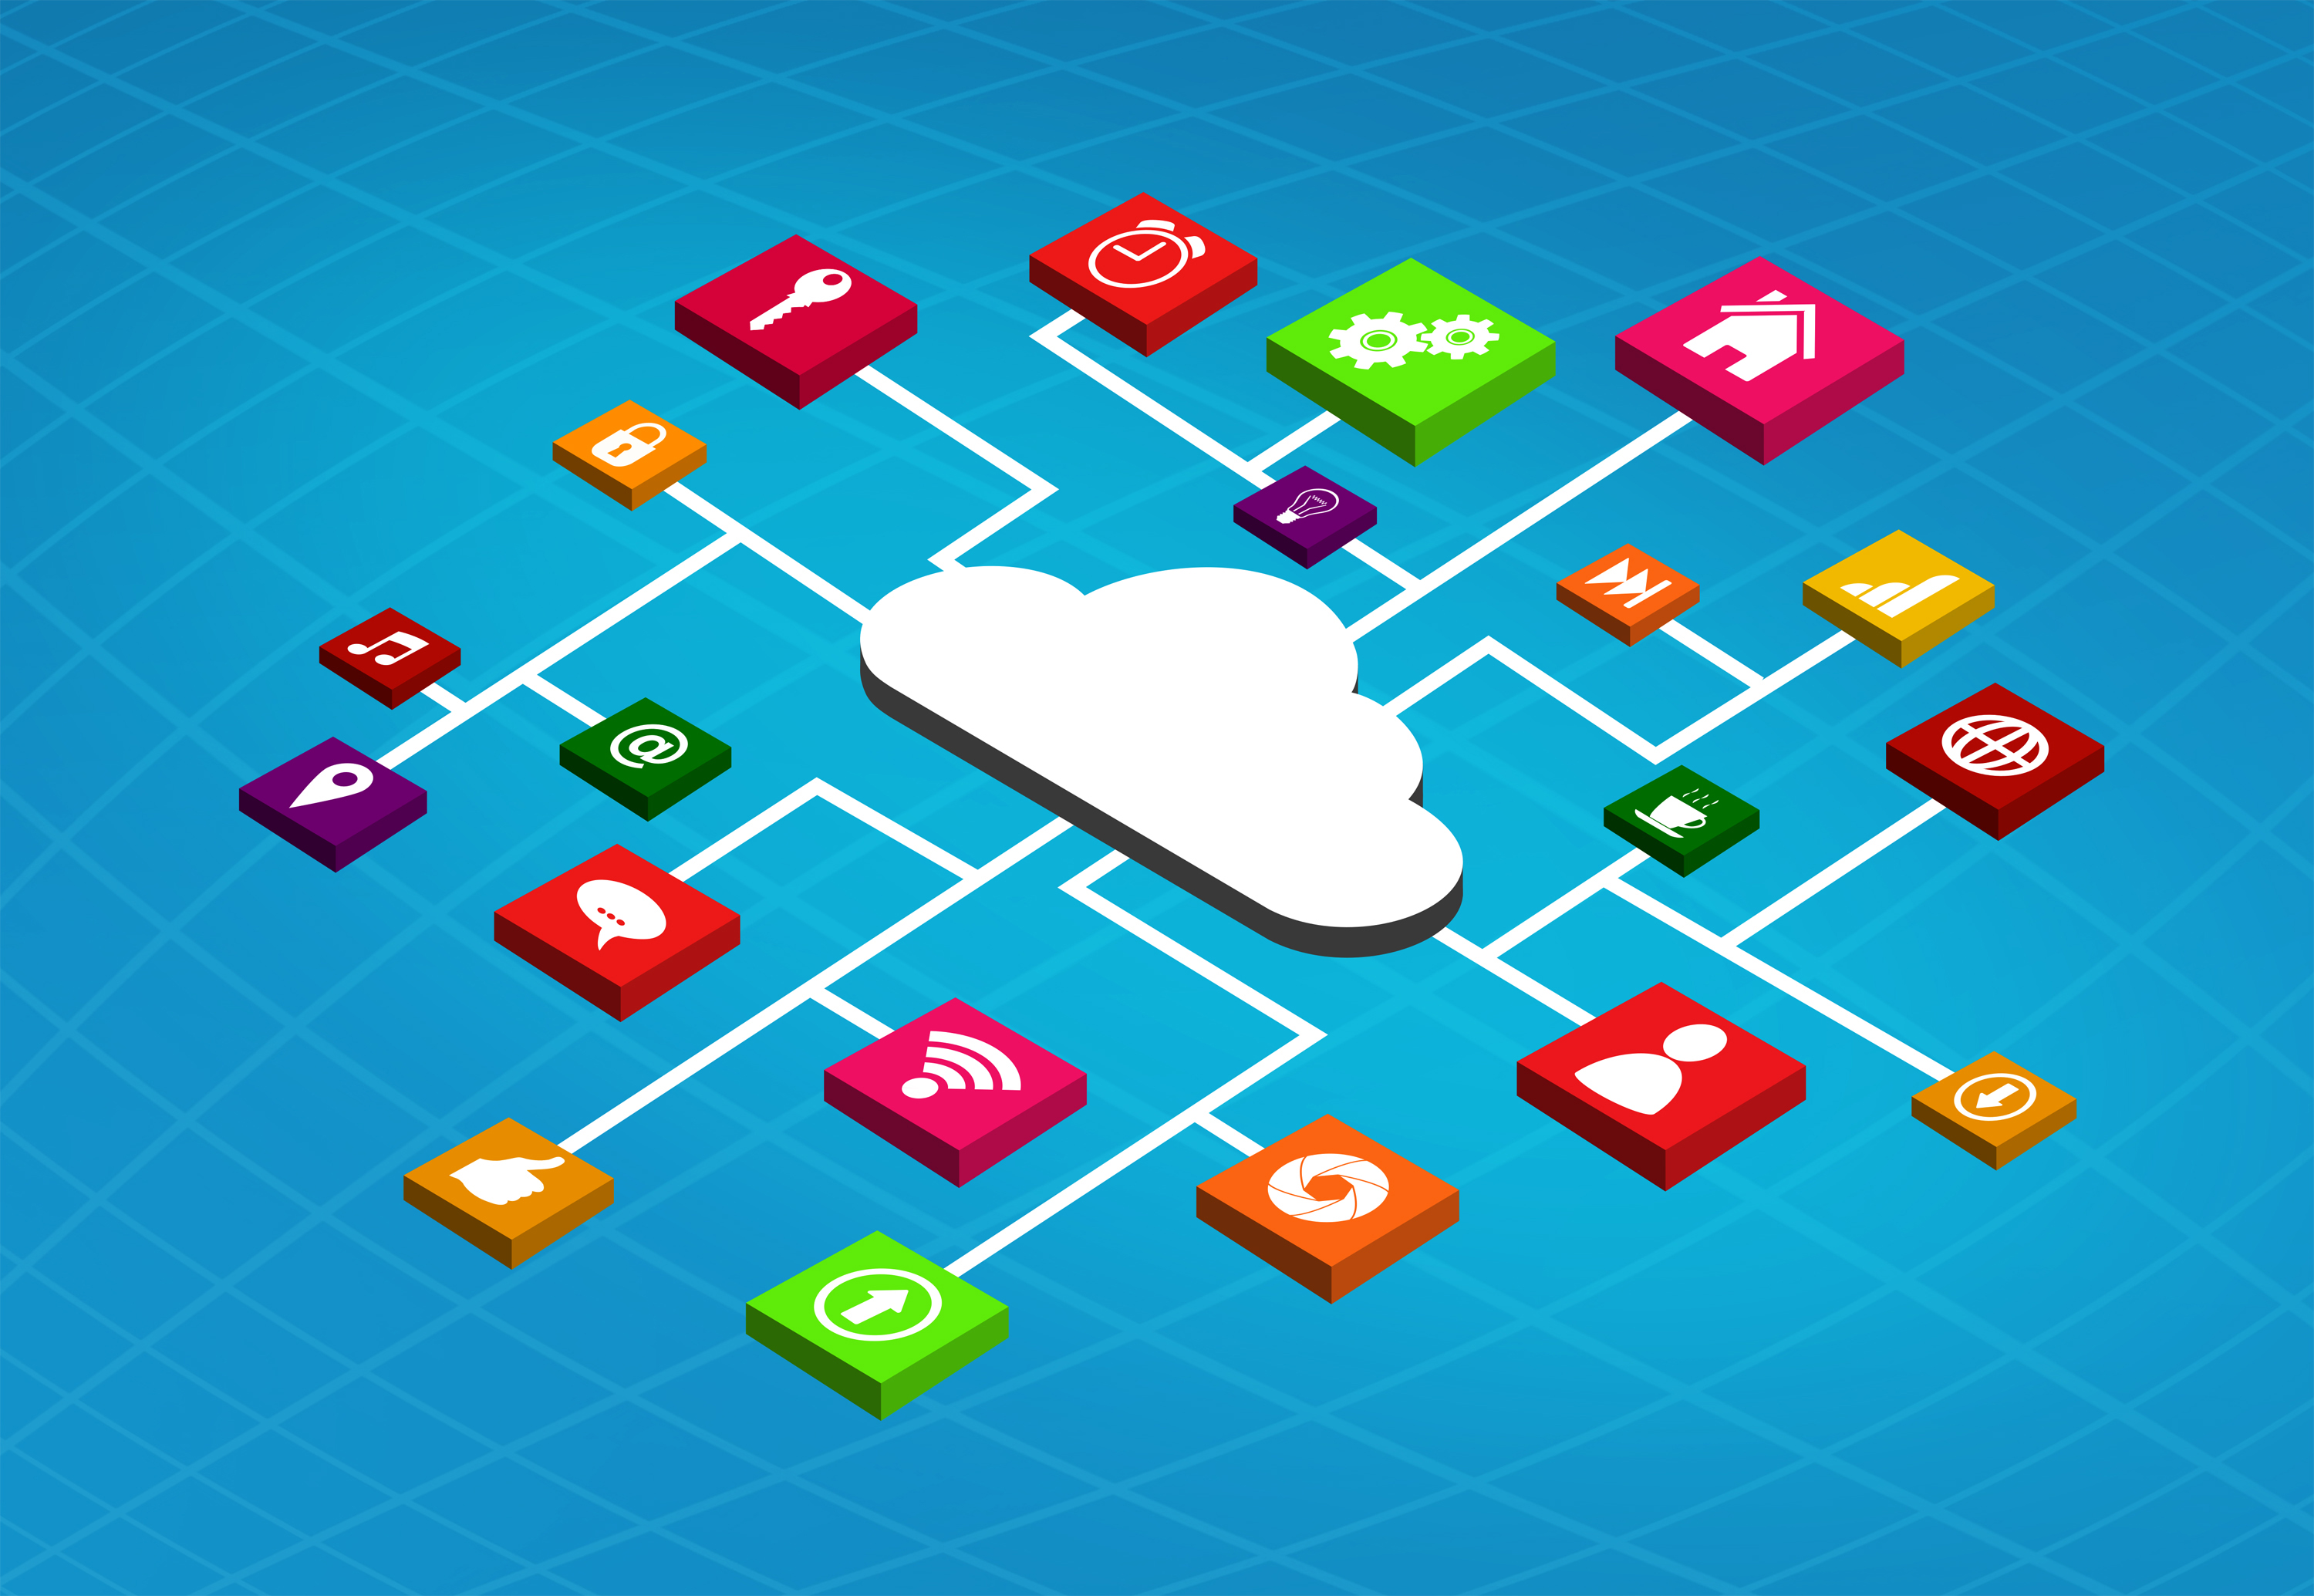 Apps running in the cloud photo